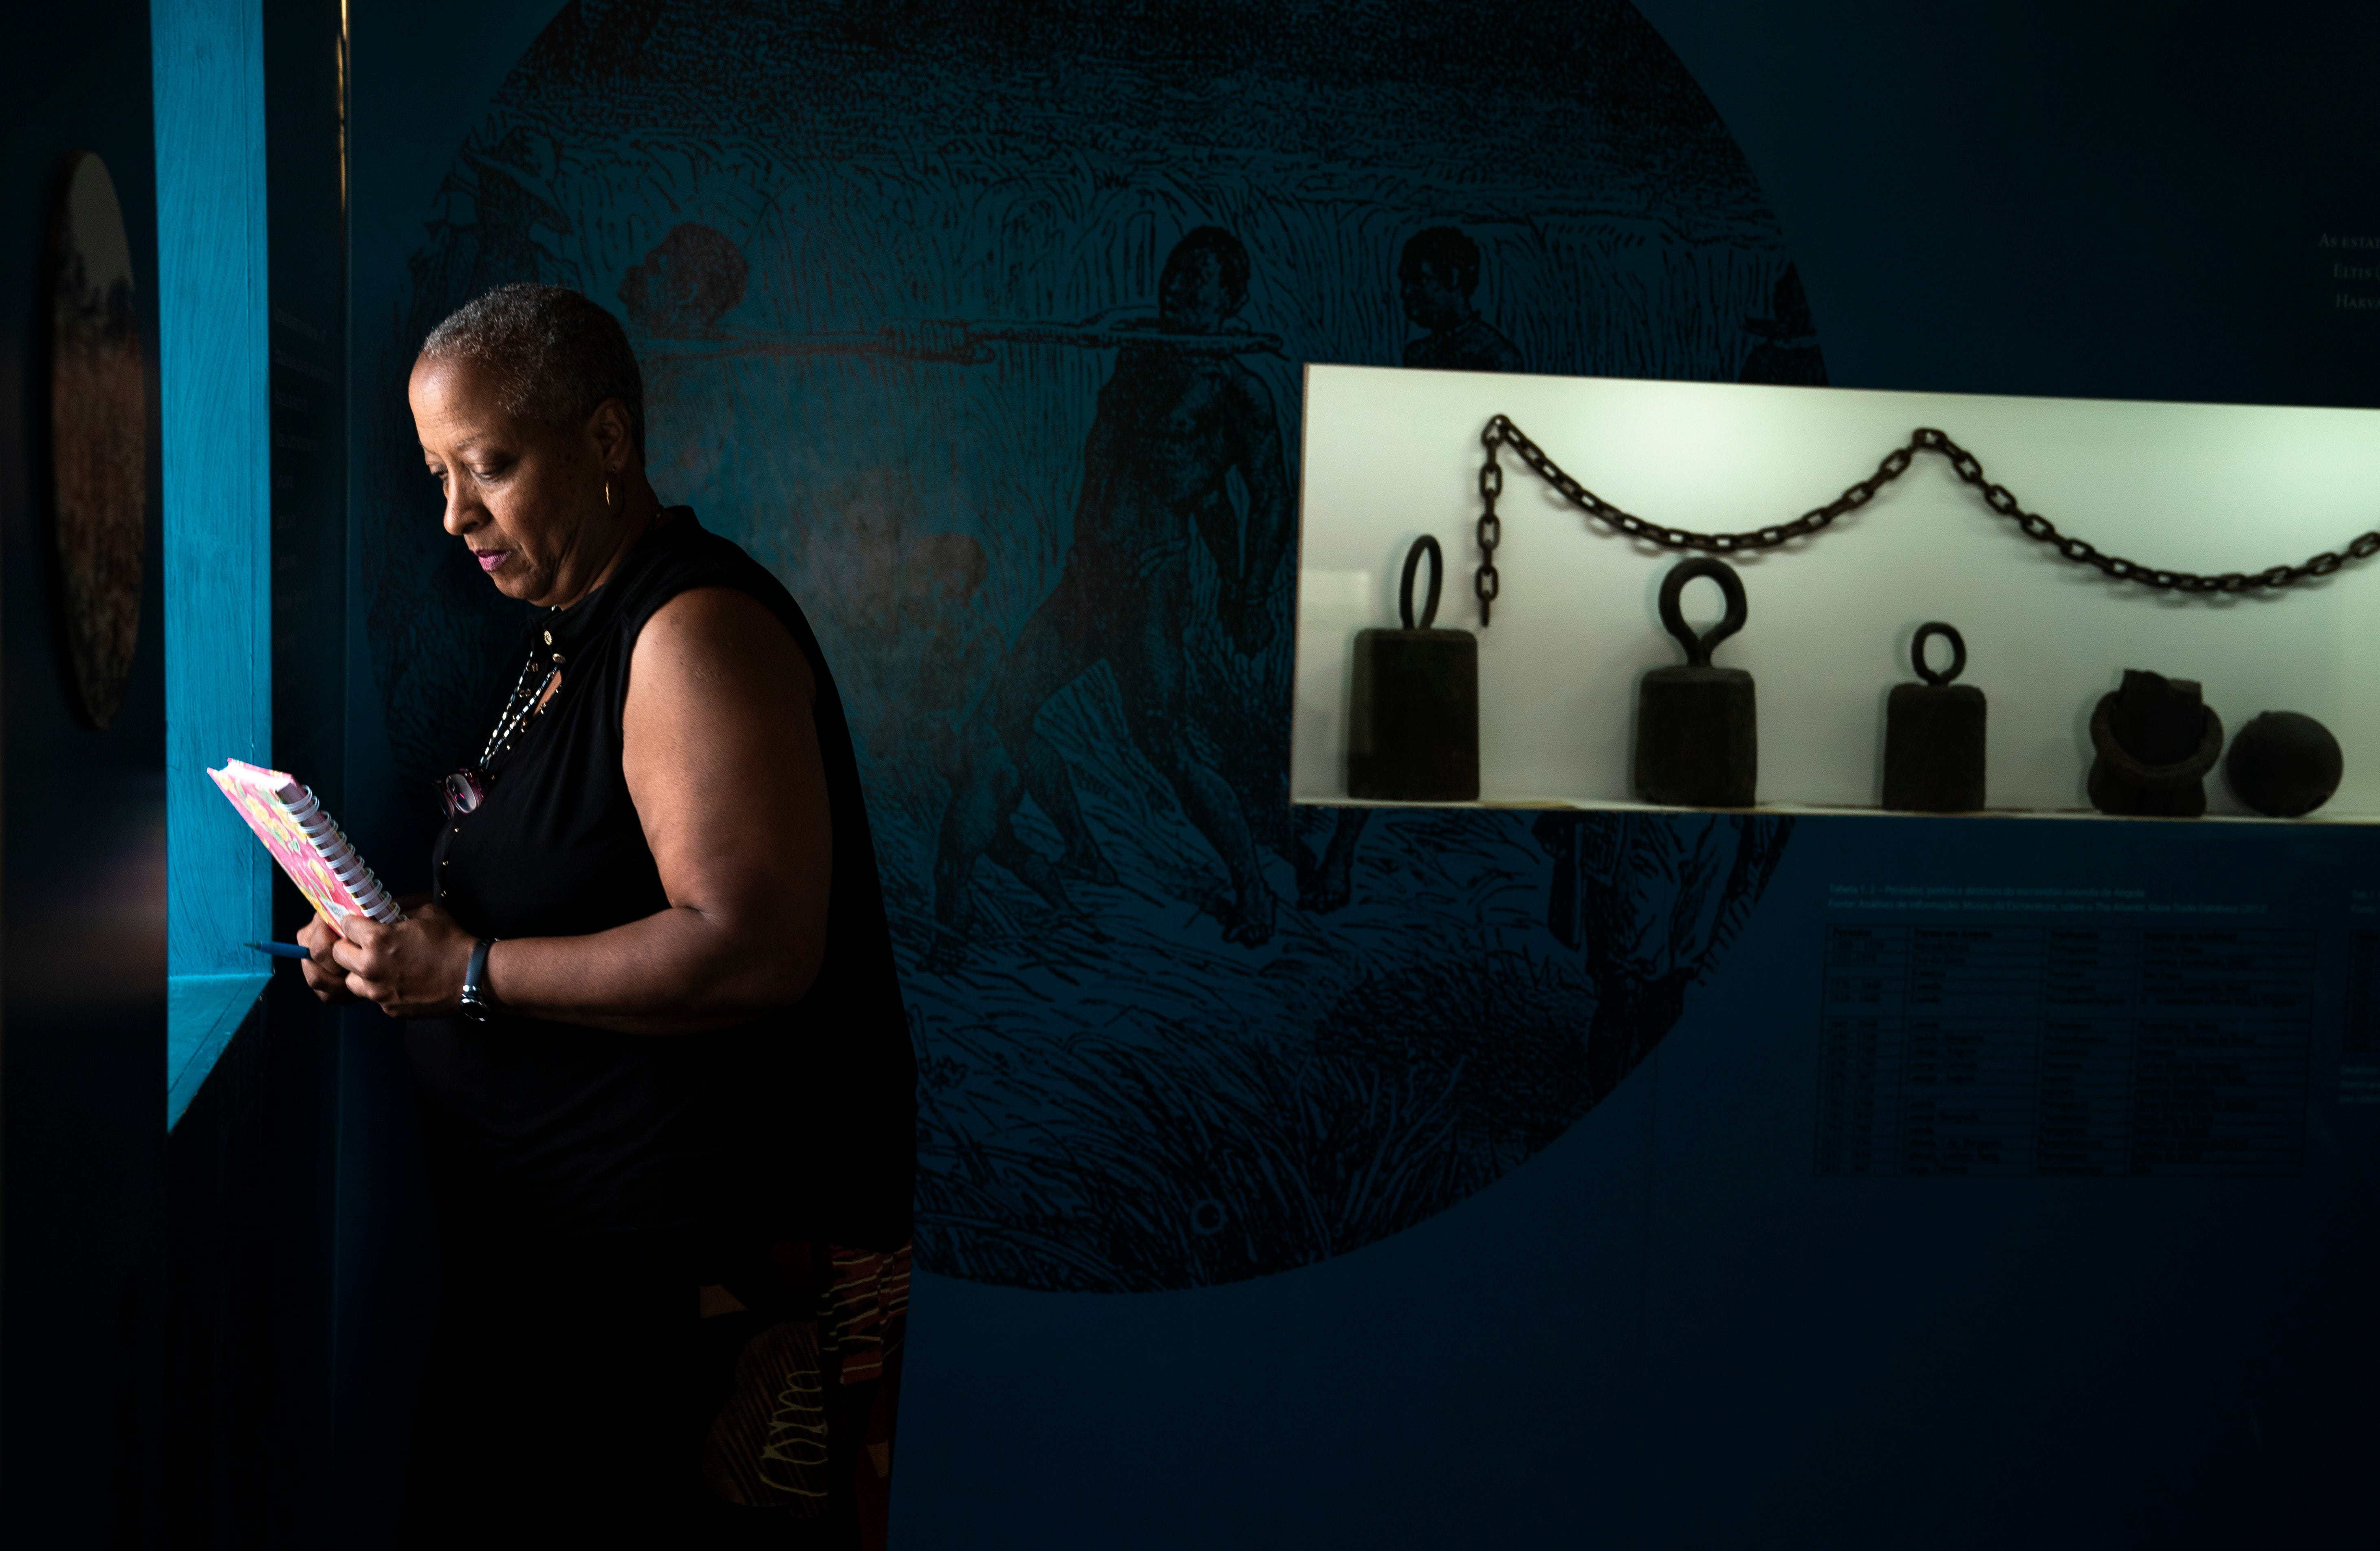 """From the window at the National Museum of Slavery on the outskirts of Luanda, Wanda could hear the ocean that carried Angolans to Virginia. """"They remind me, through 400 years, that I too can face another day,"""" she wrote in her journal. """"I can be resilient. I can have faith and hope."""""""